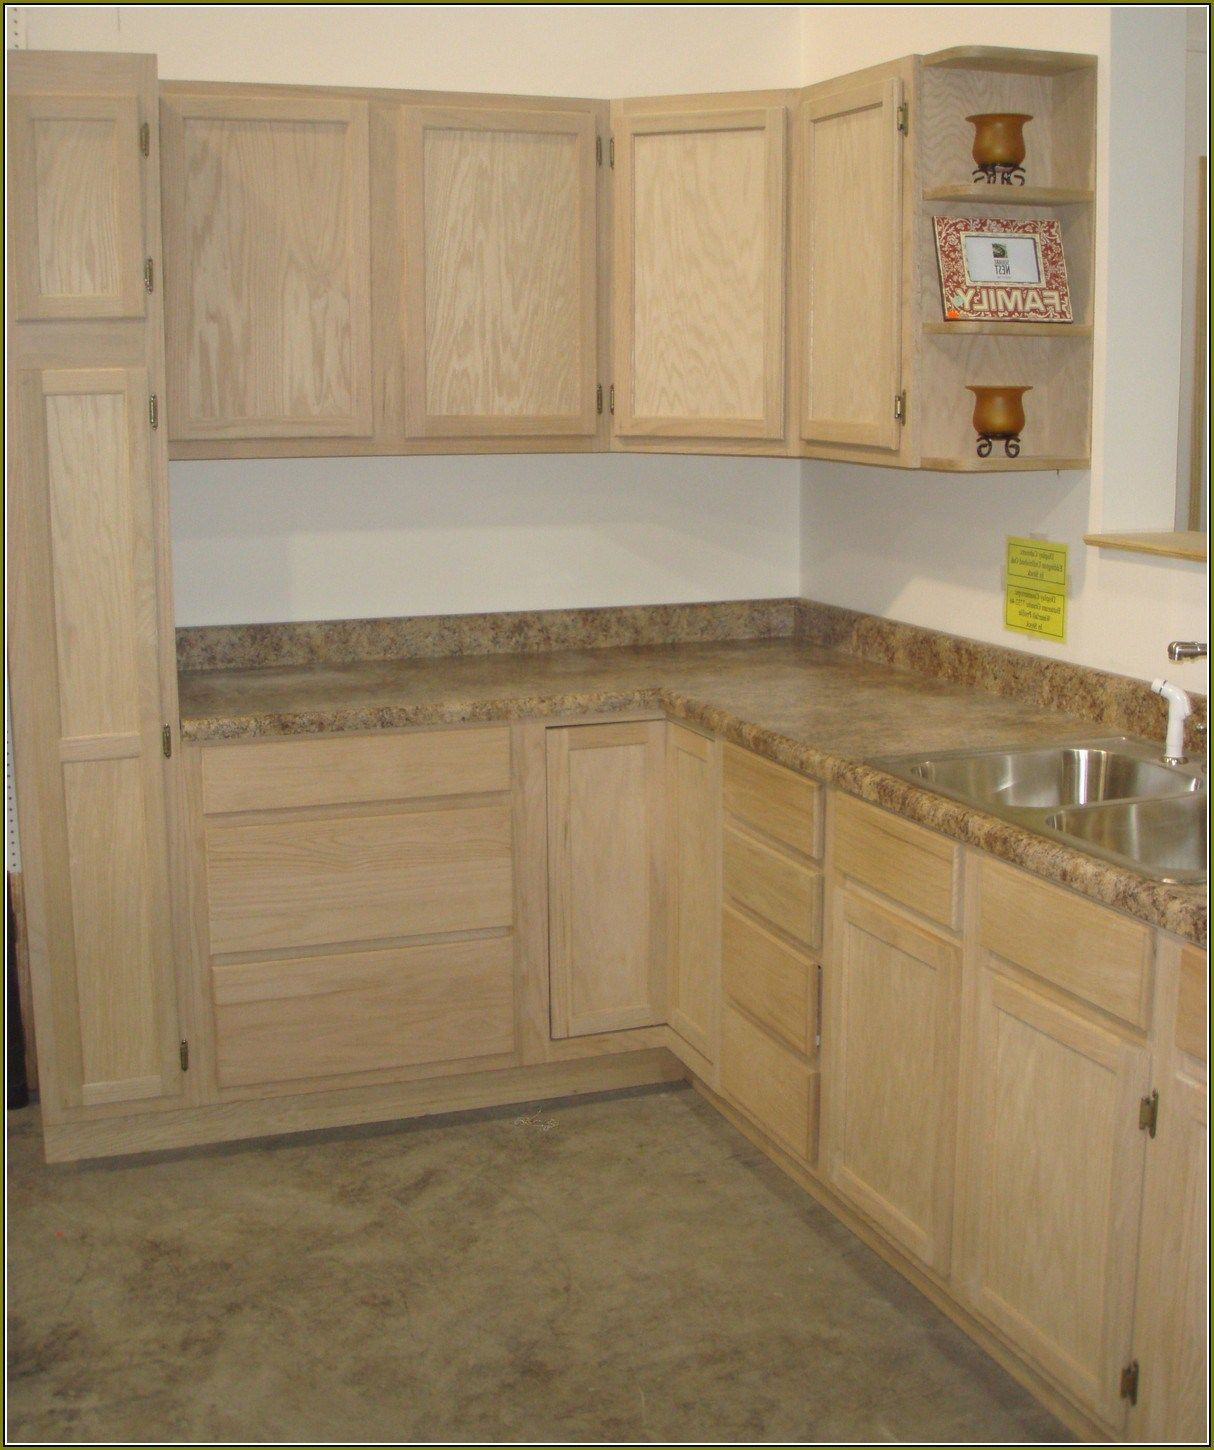 Lowes Kitchen Wall Cabinets In 2020 Kitchen Cabinets Home Depot Home Depot Kitchen Unfinished Kitchen Cabinets